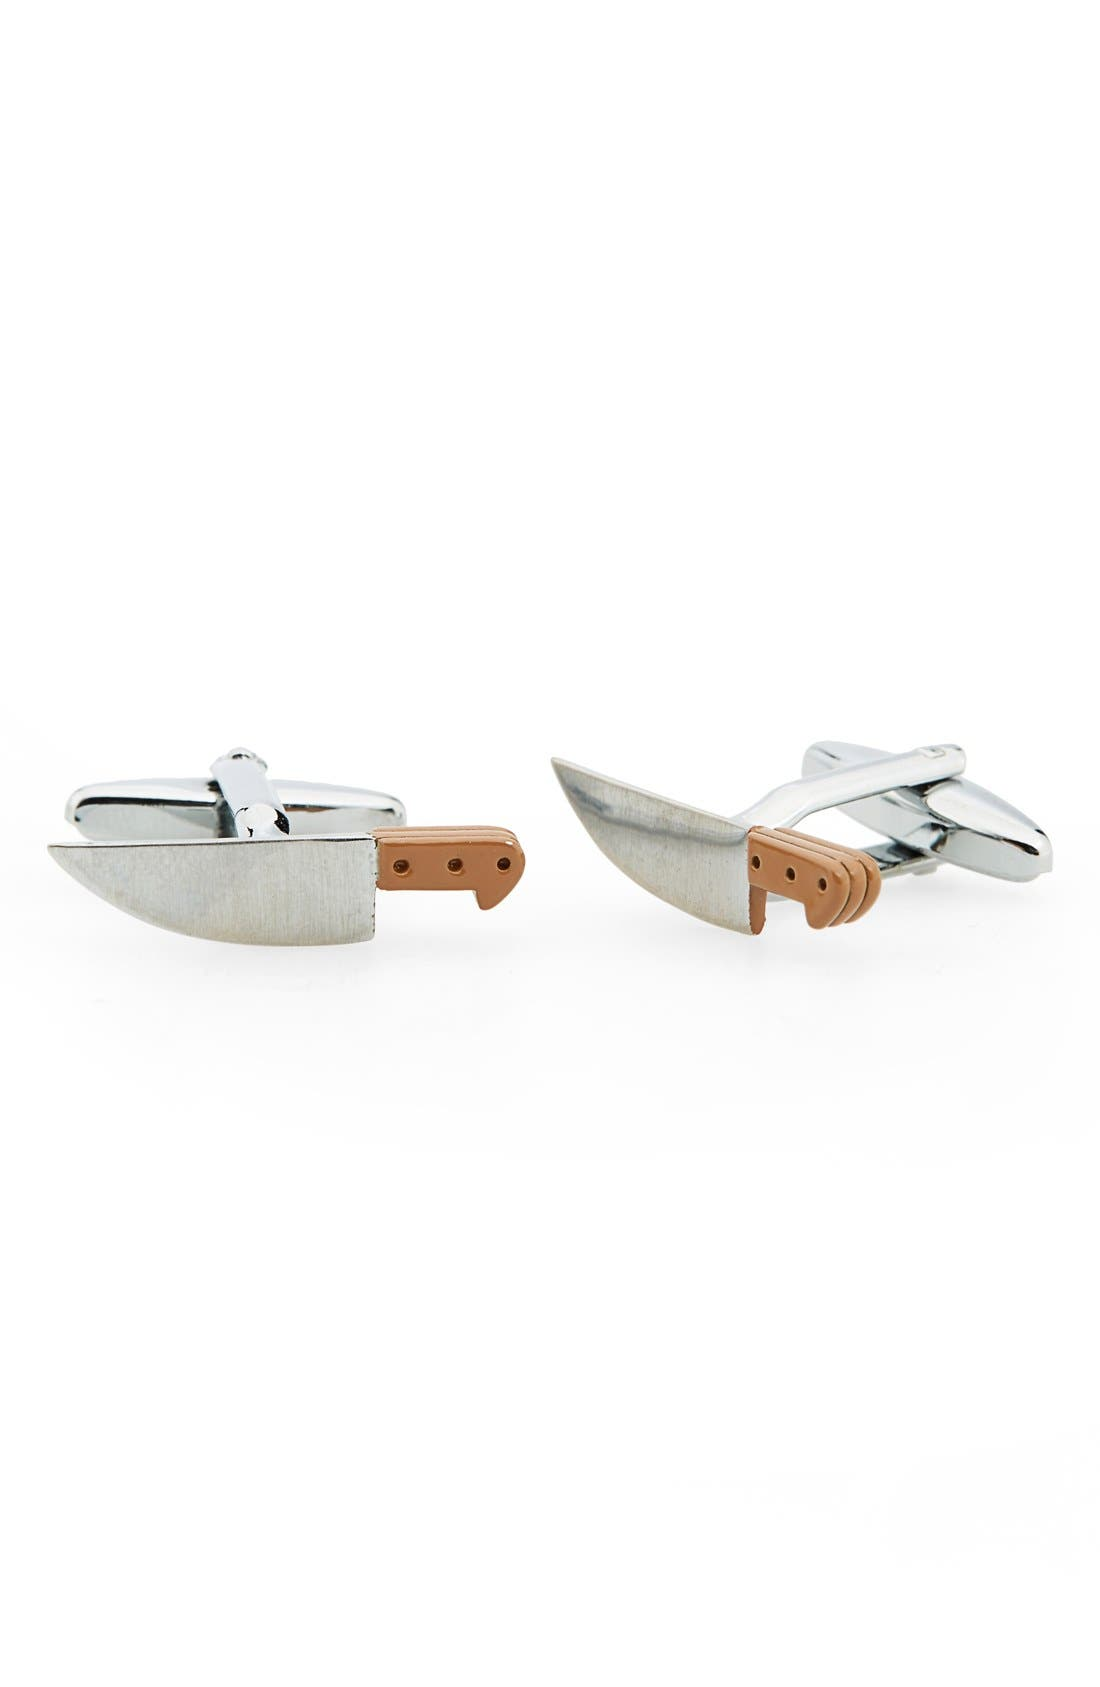 'Knife' Cuff Links,                             Main thumbnail 1, color,                             Silver